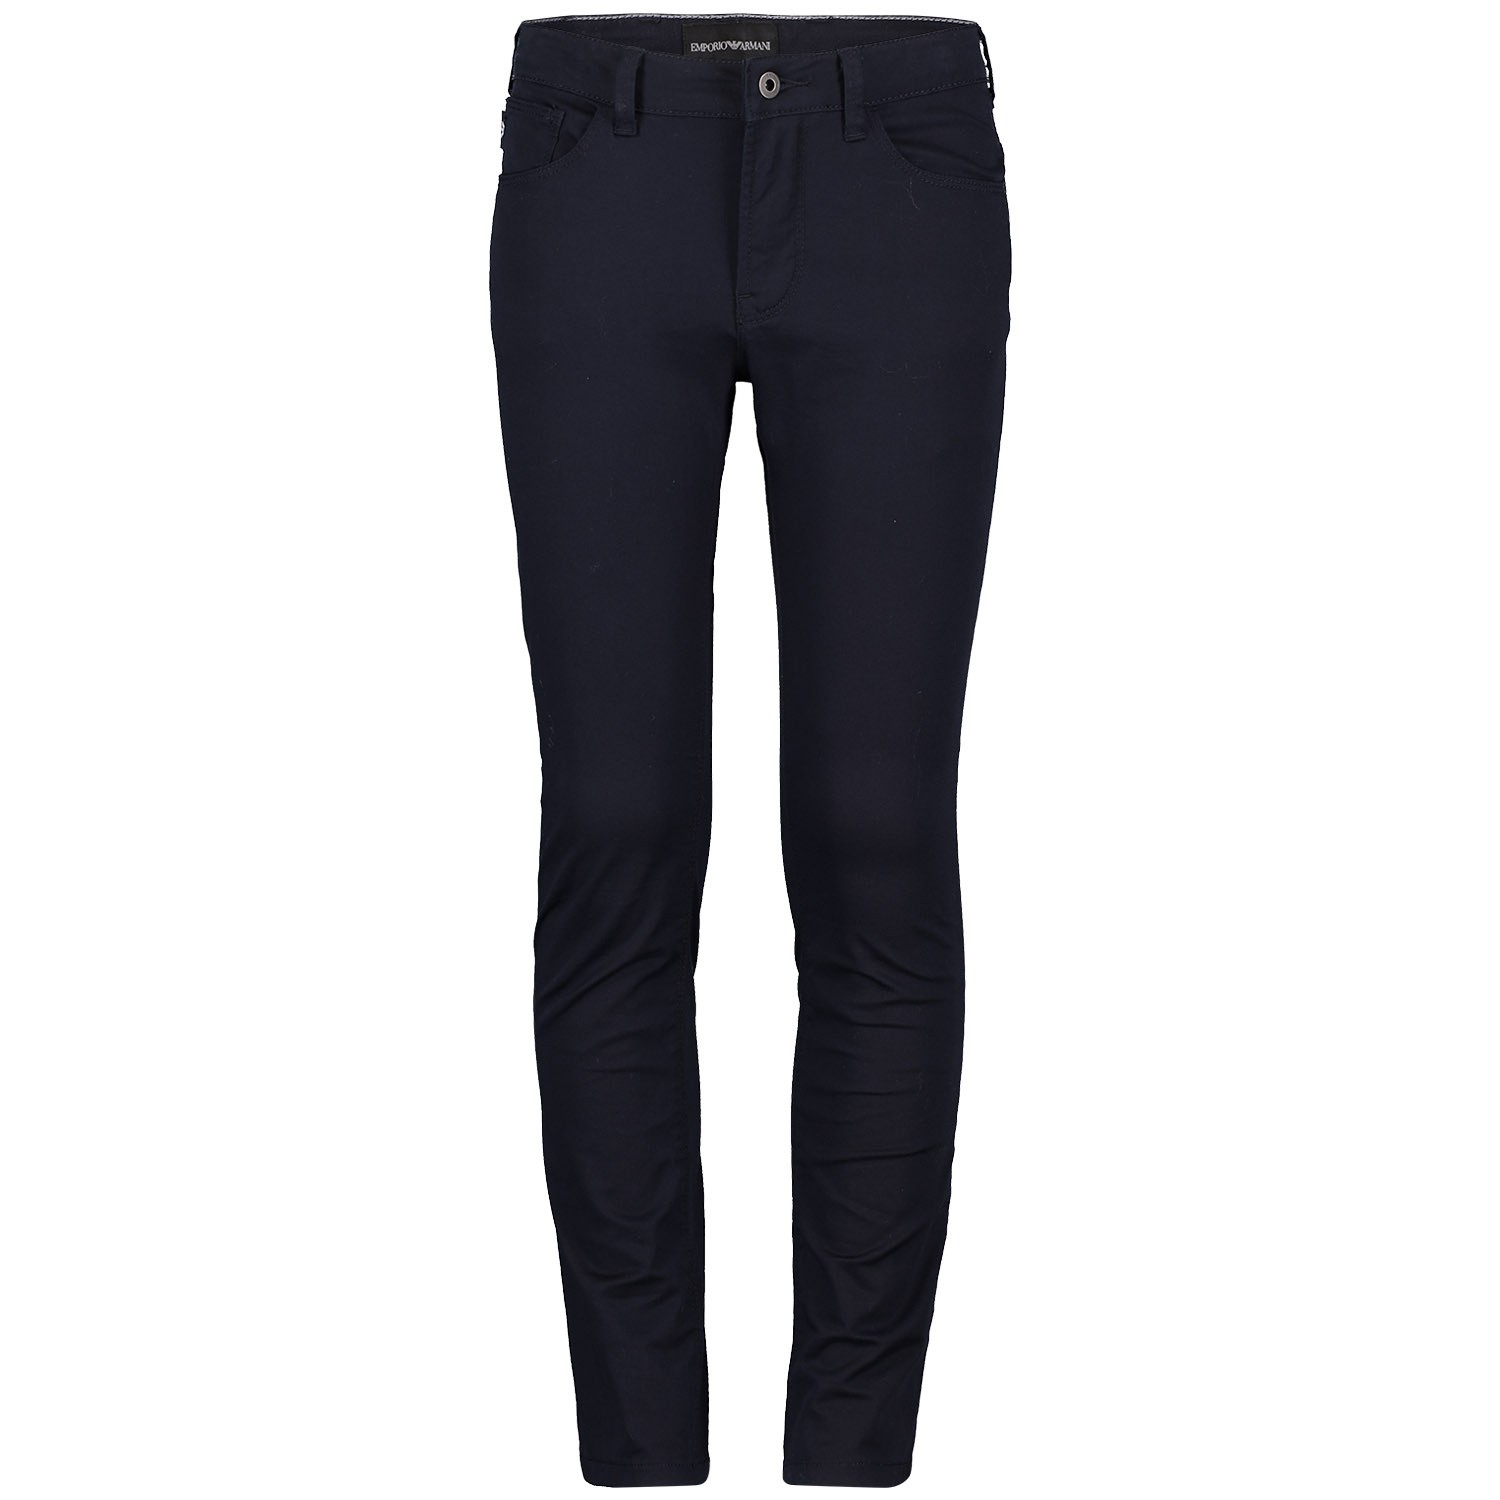 Picture of Armani 8N4J06 kids jeans navy